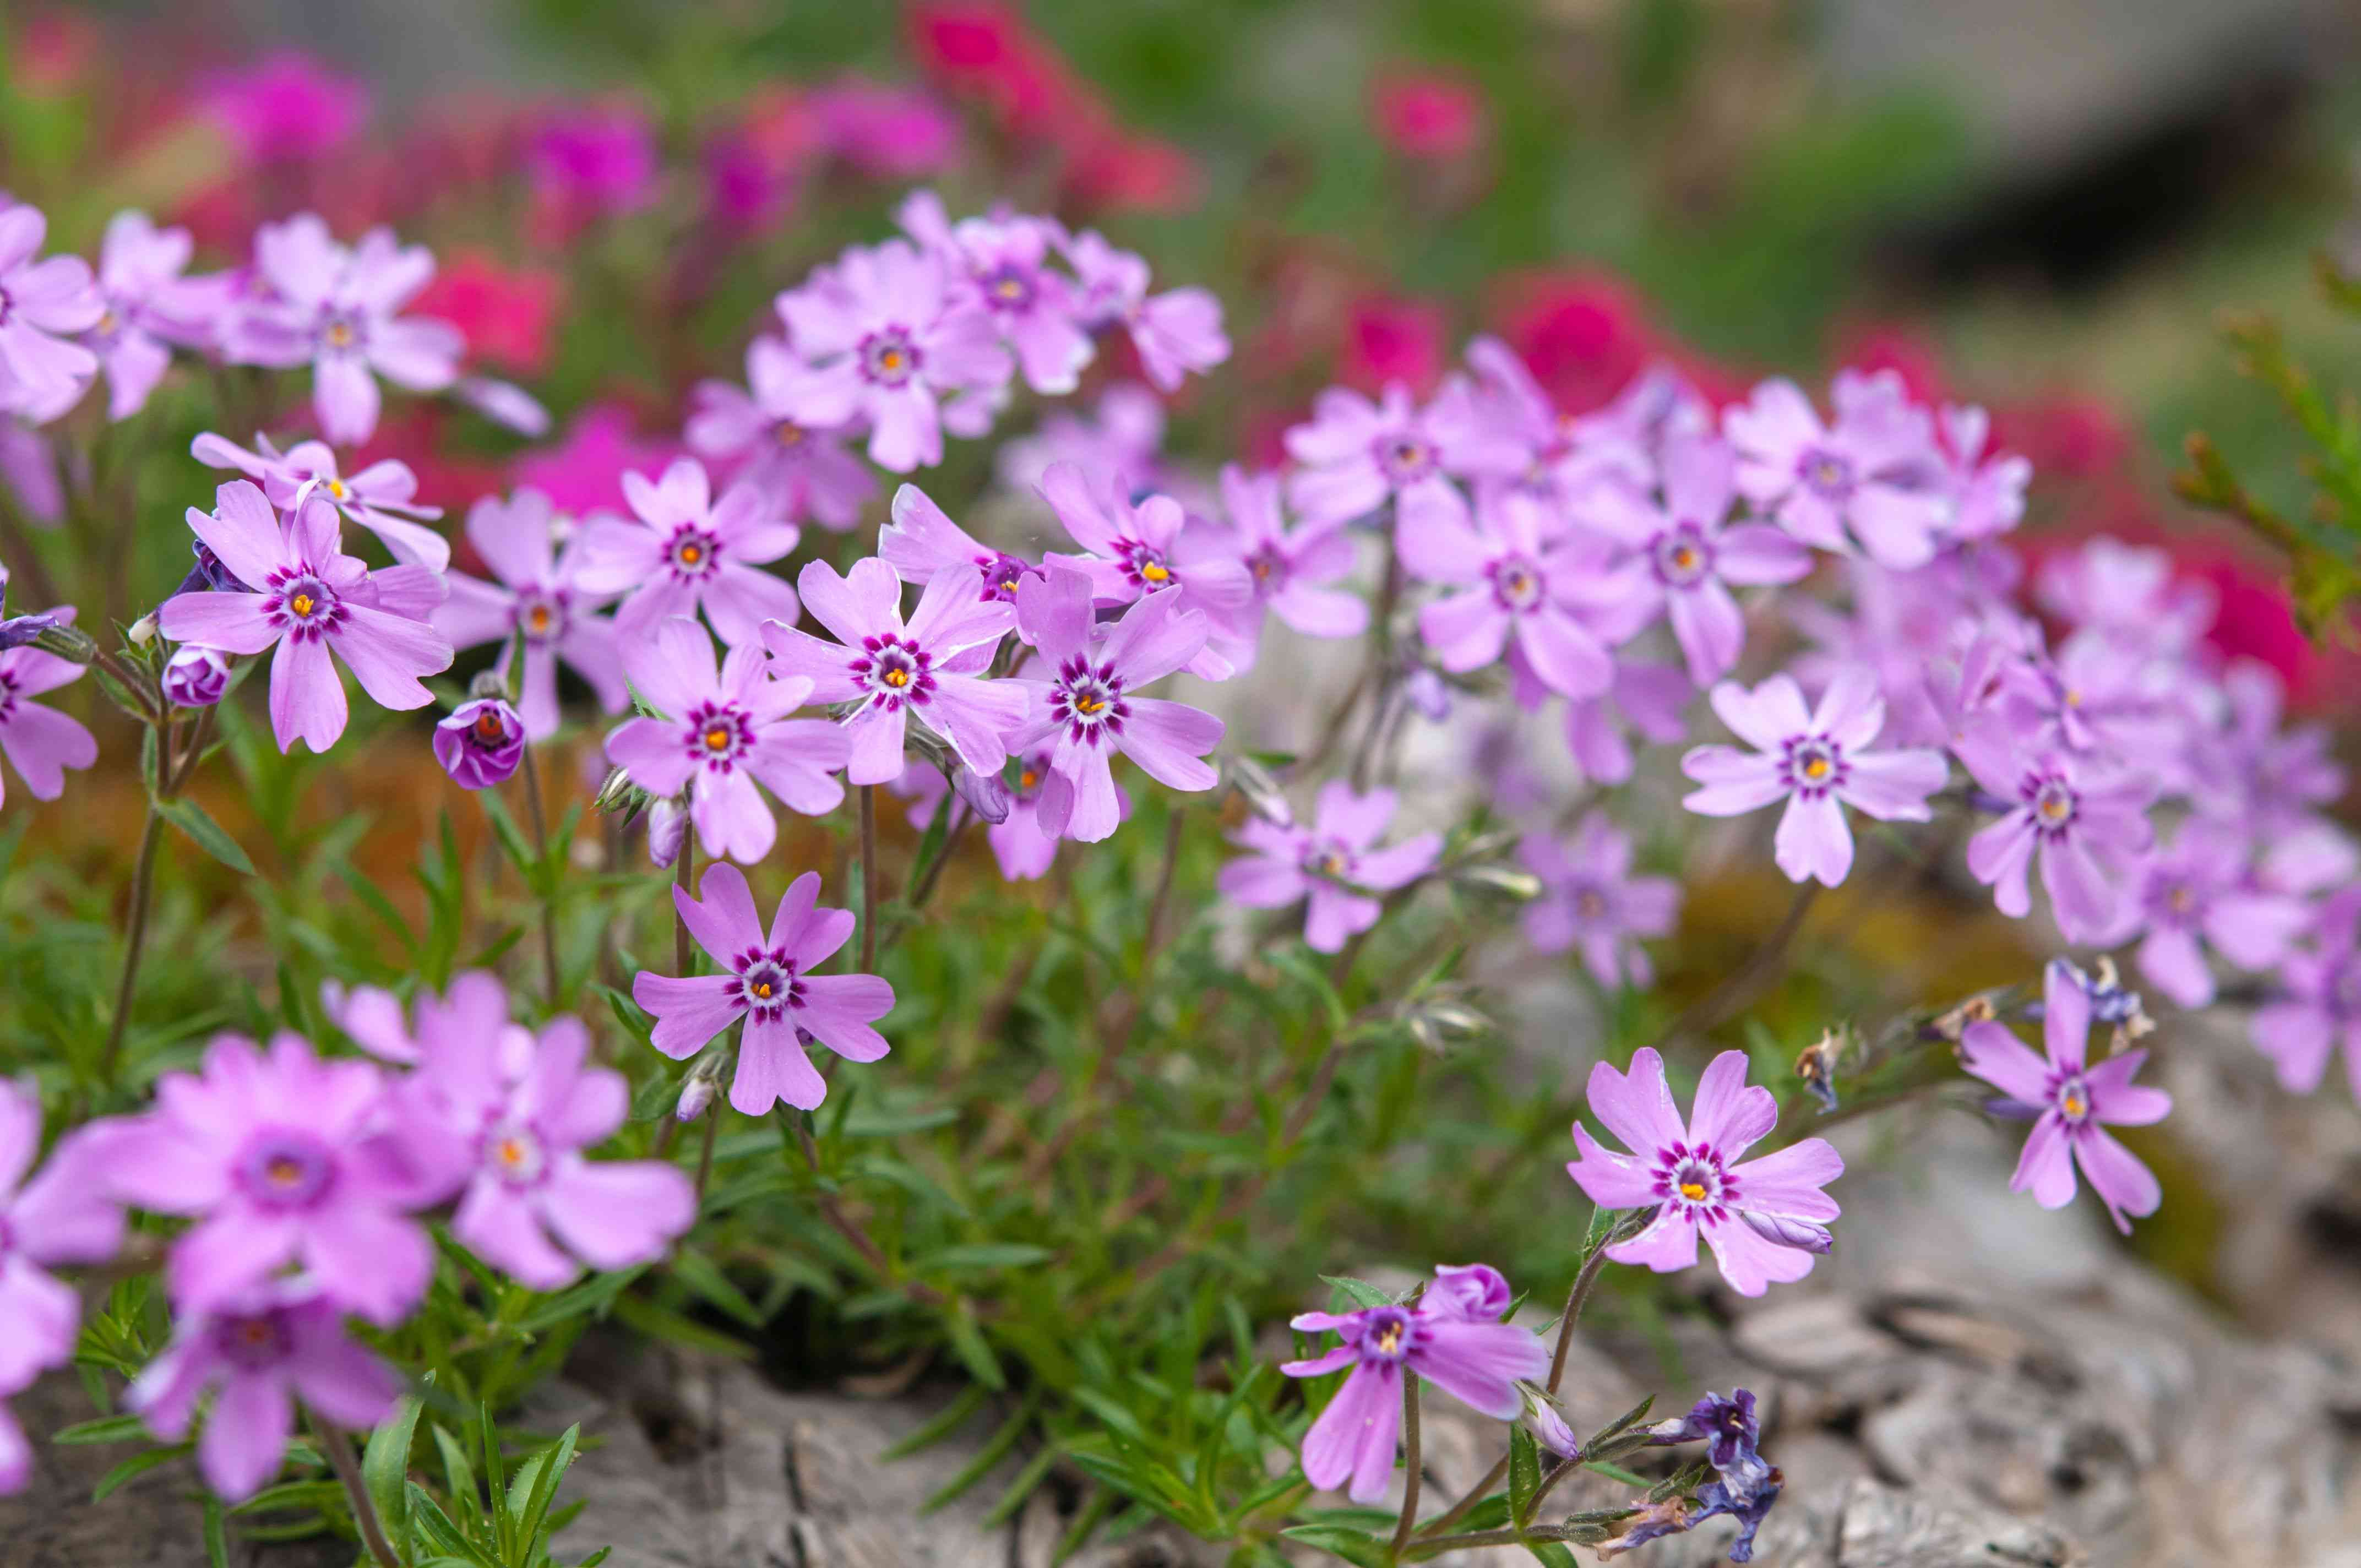 Creeping phlox plant with small pink flowers on thin stems and branches on top of rock closeup